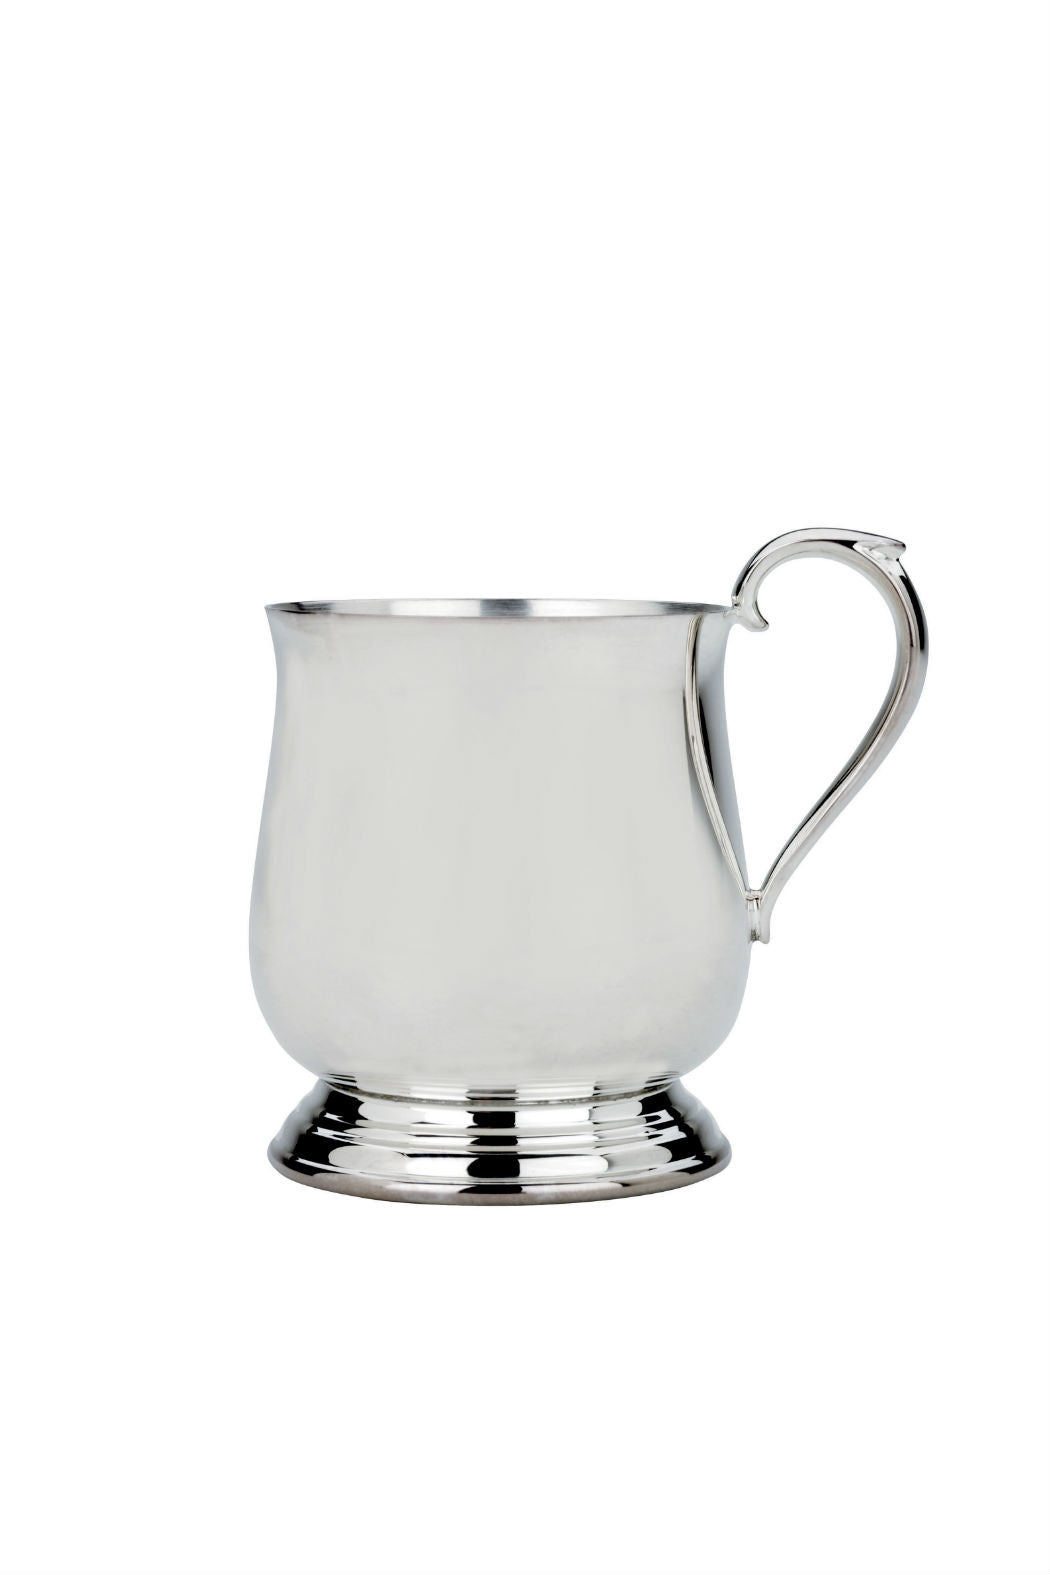 Revere Silver Plated Baby Cup - New Orientation  - 2